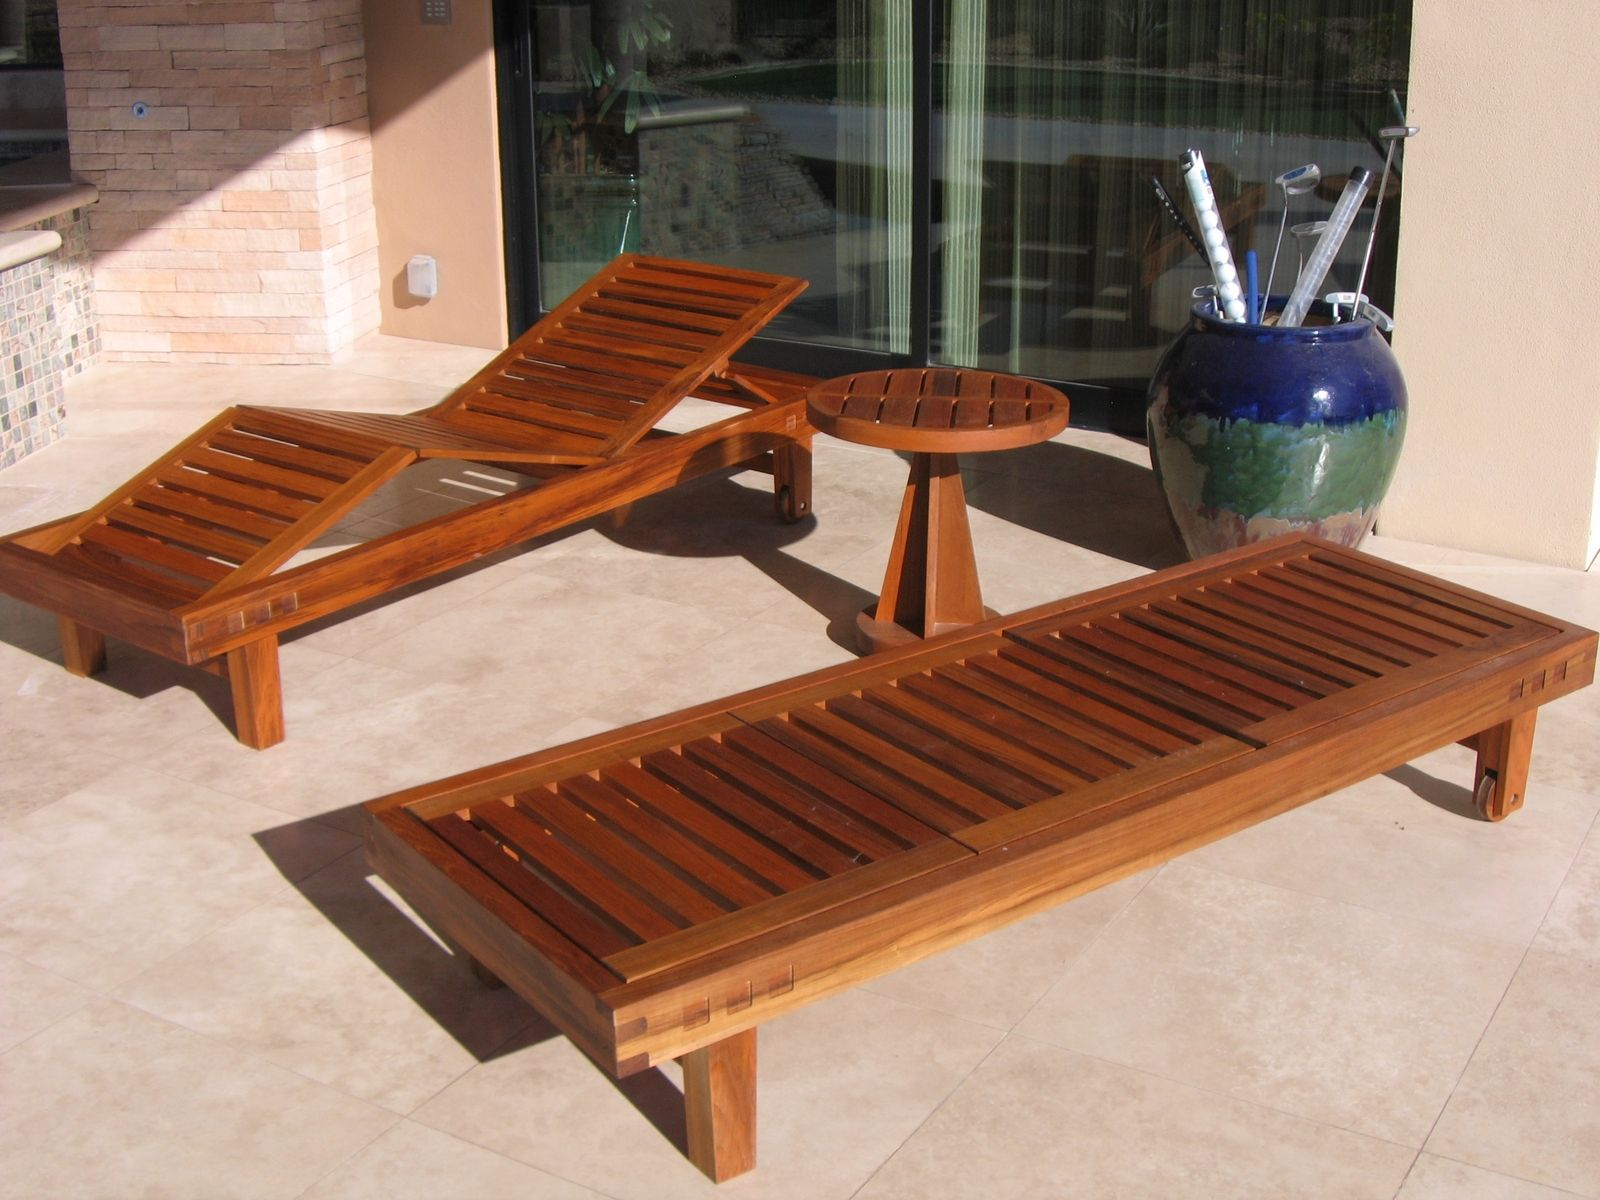 what are pool chairs made out of pyramat wireless gaming chair how to connect handmade teak patio furniture by riverwoods mill